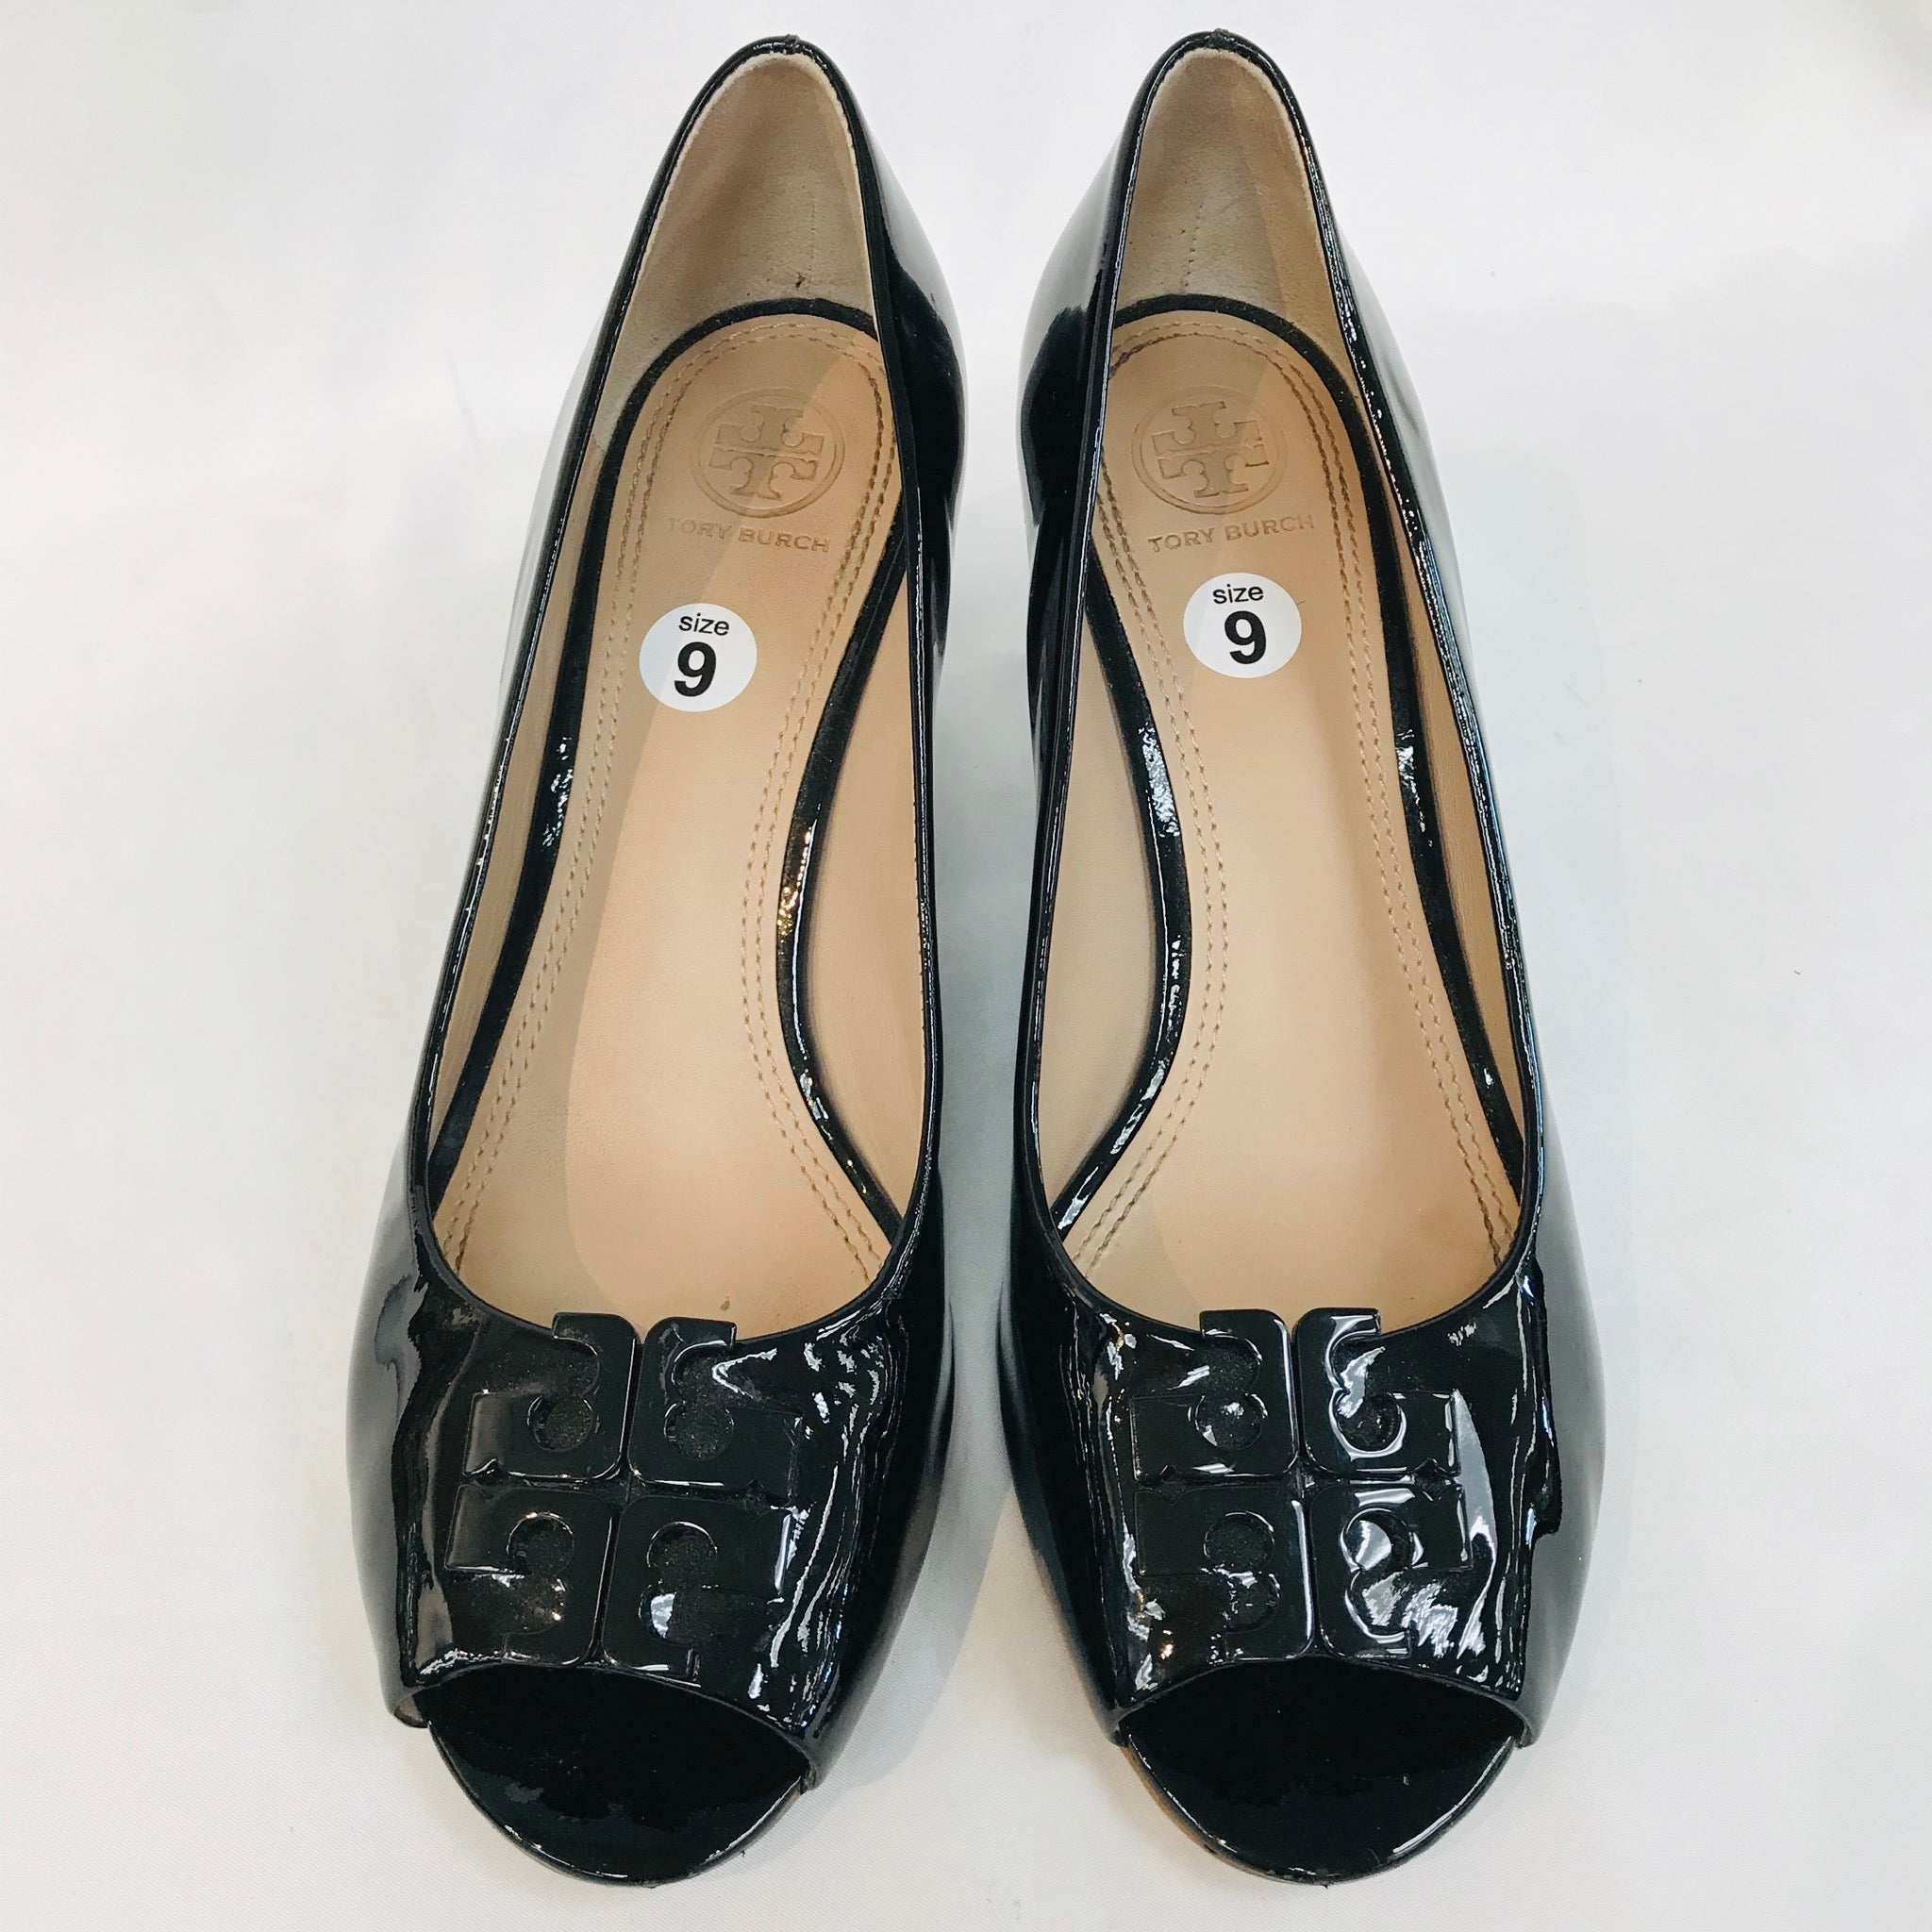 Primary Photo - BRAND: TORY BURCH <BR>STYLE: SHOES FLATS <BR>COLOR: BLACK <BR>SIZE: 9 M<BR>SKU: 262-26298-409<BR>AS IS